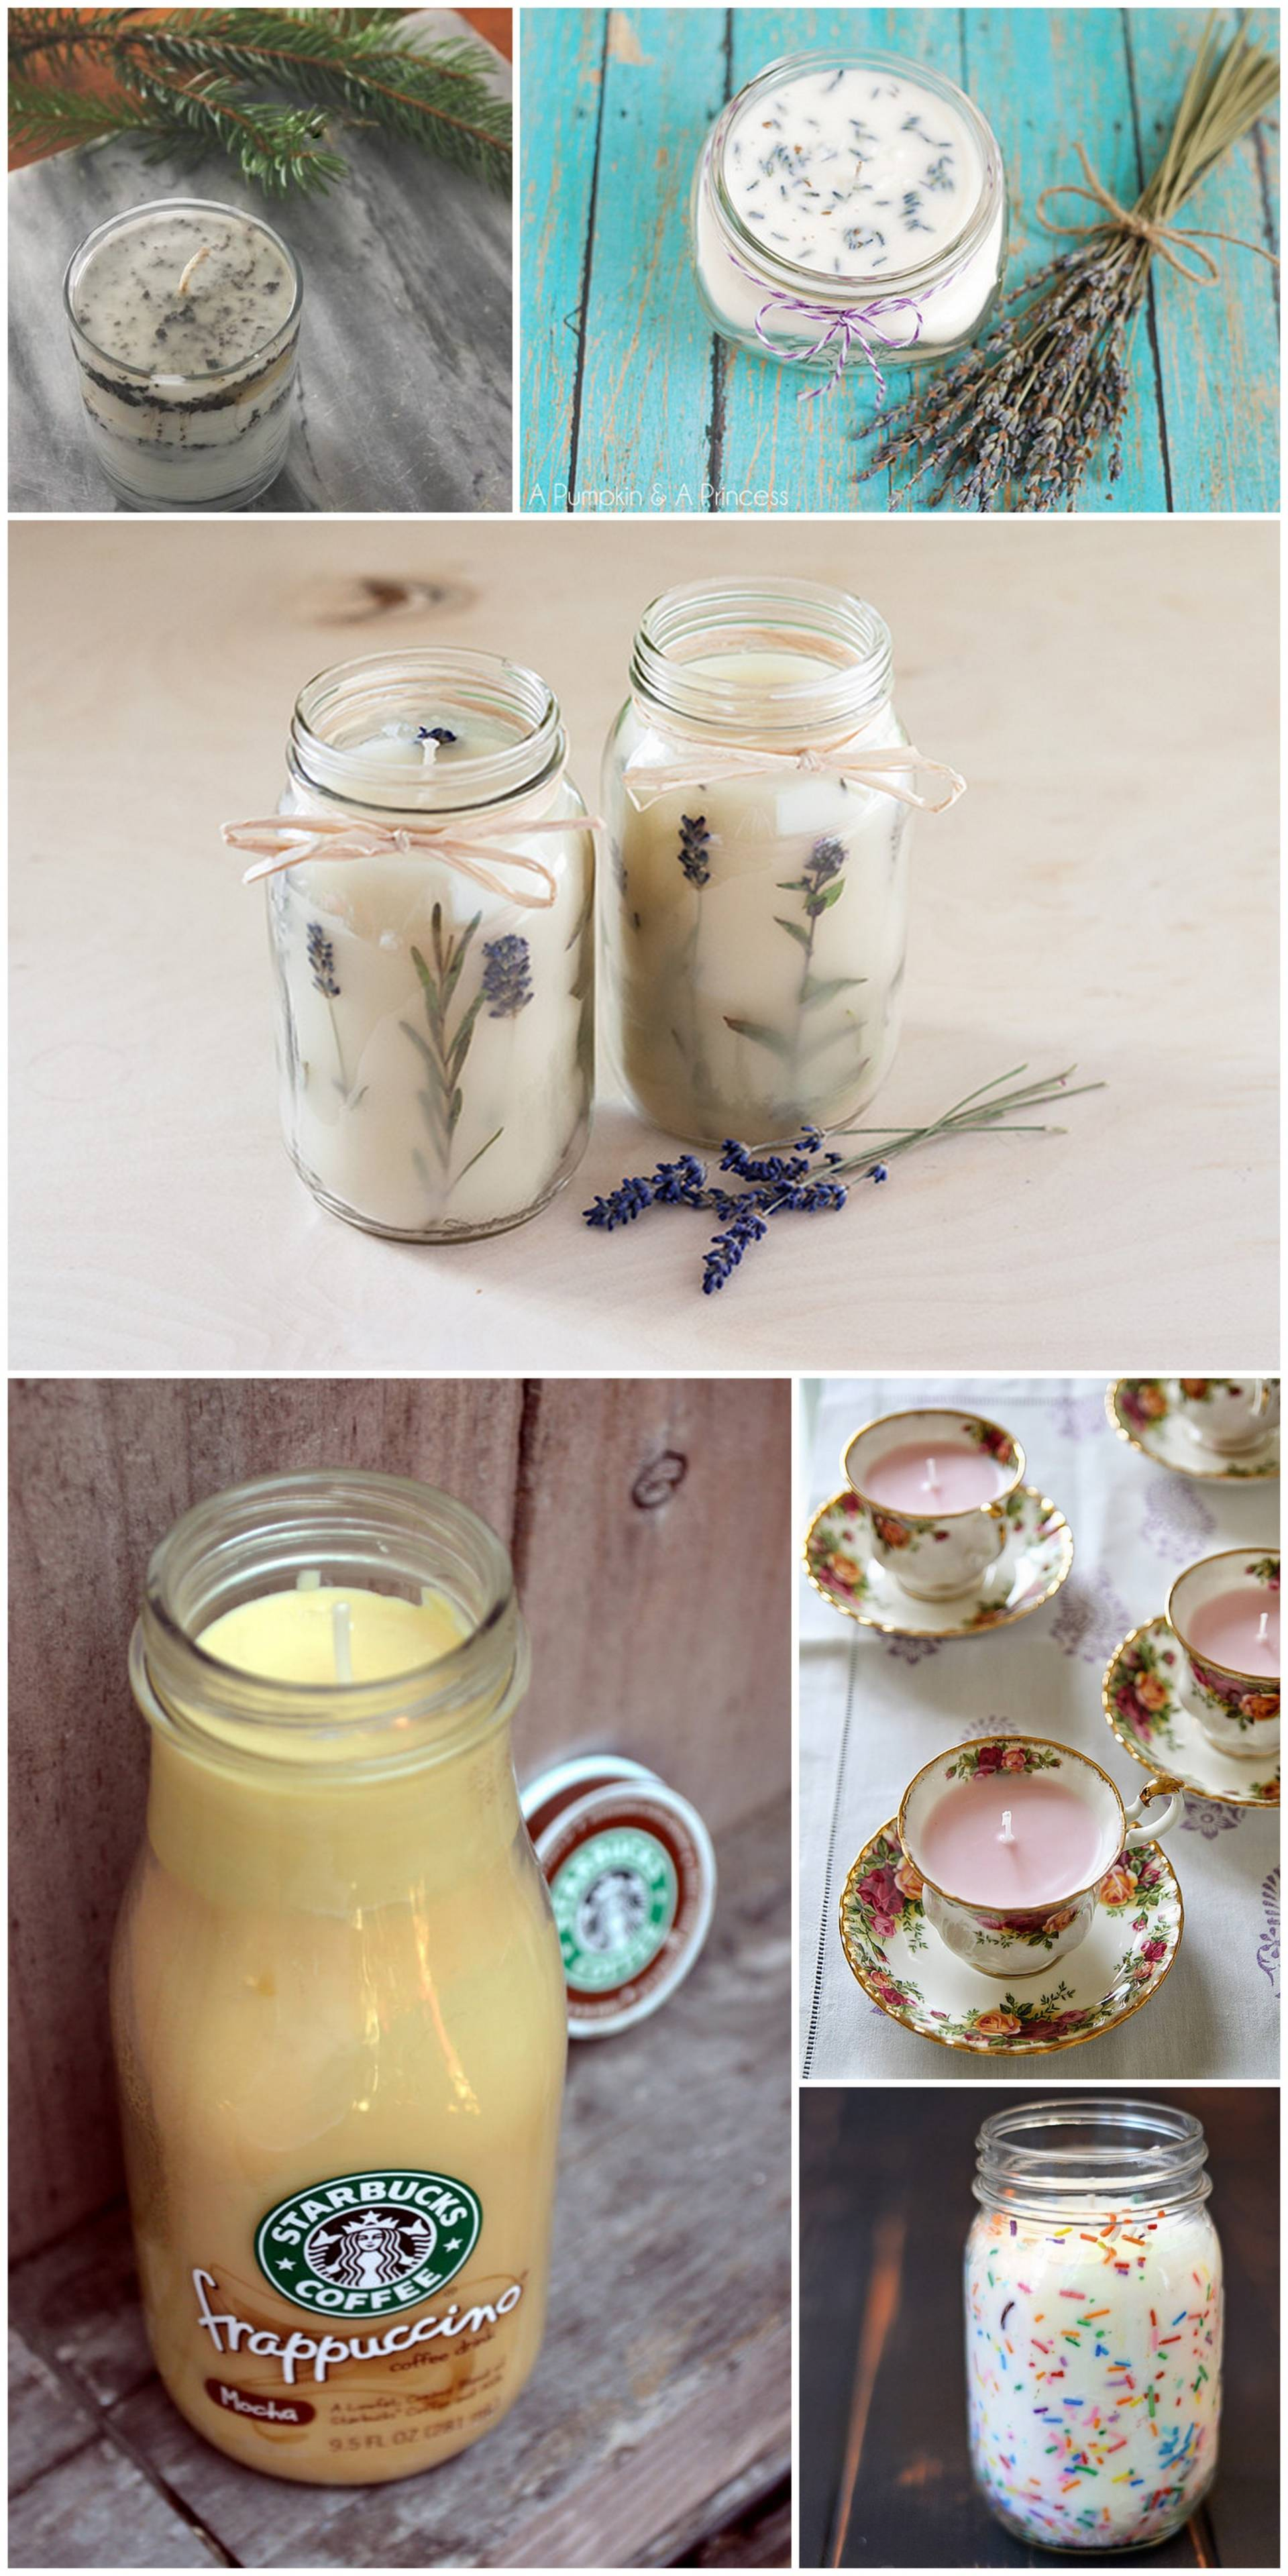 inspiration for more DIY candles